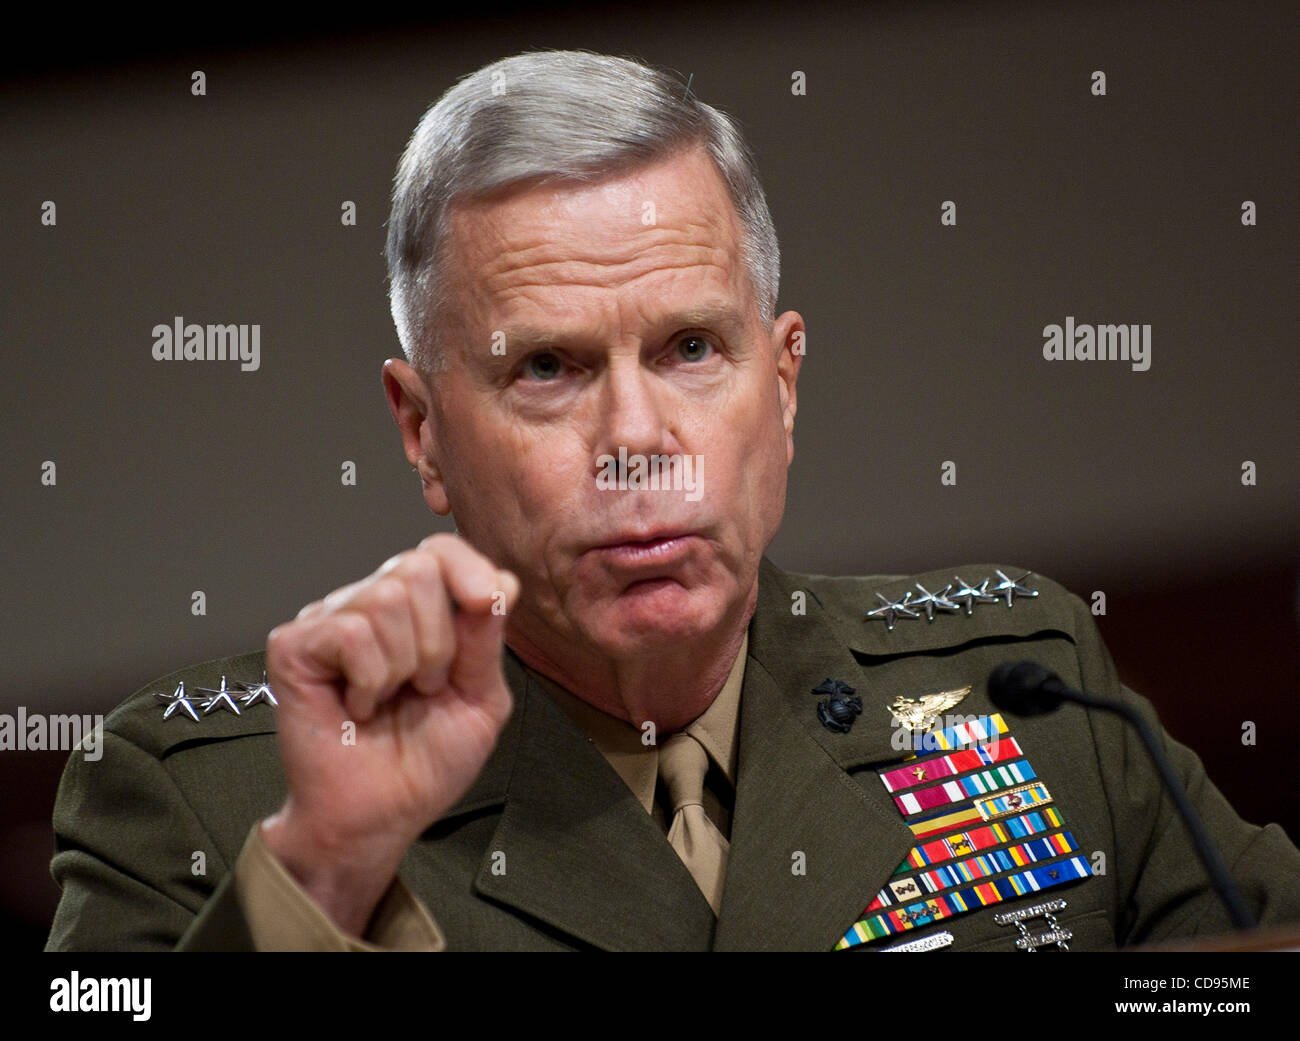 June 22, 2010 - Washington, District of Columbia, U.S., - Gen. James Amos, assistant commandant of the Marine Corps Stock Photo